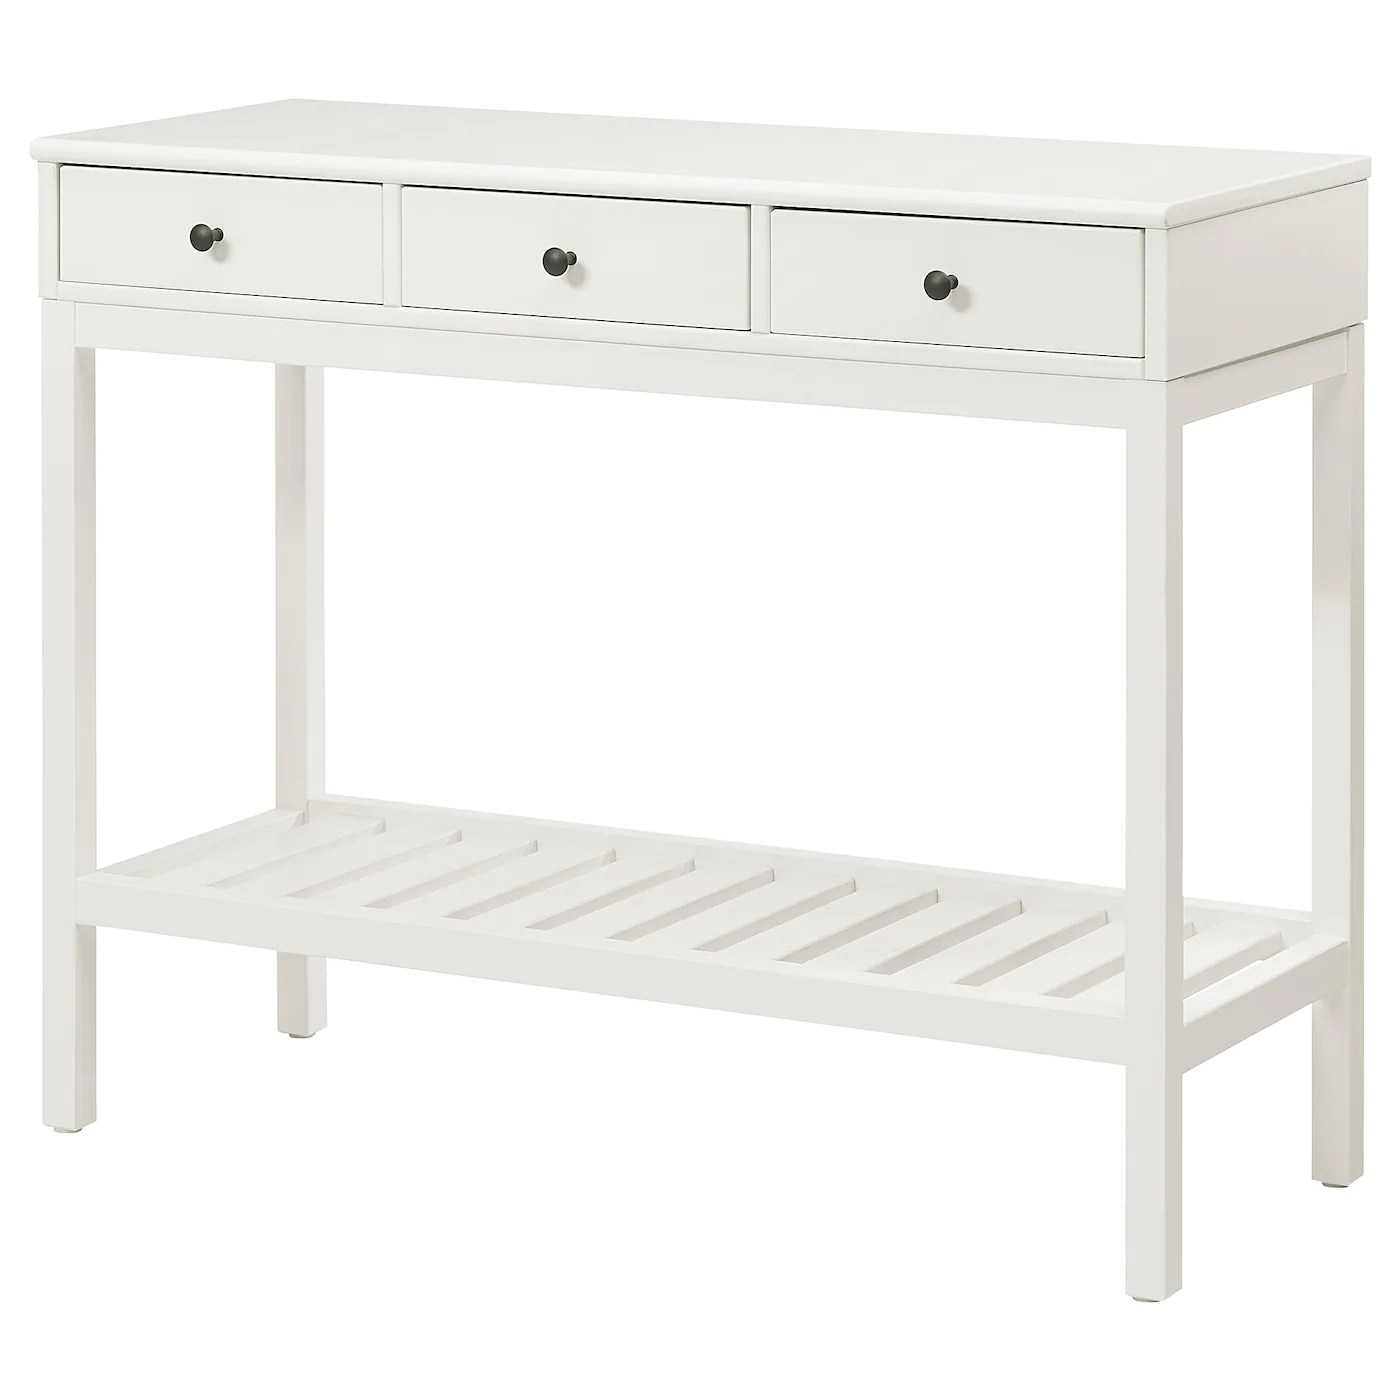 Panget Console Table White Ikea